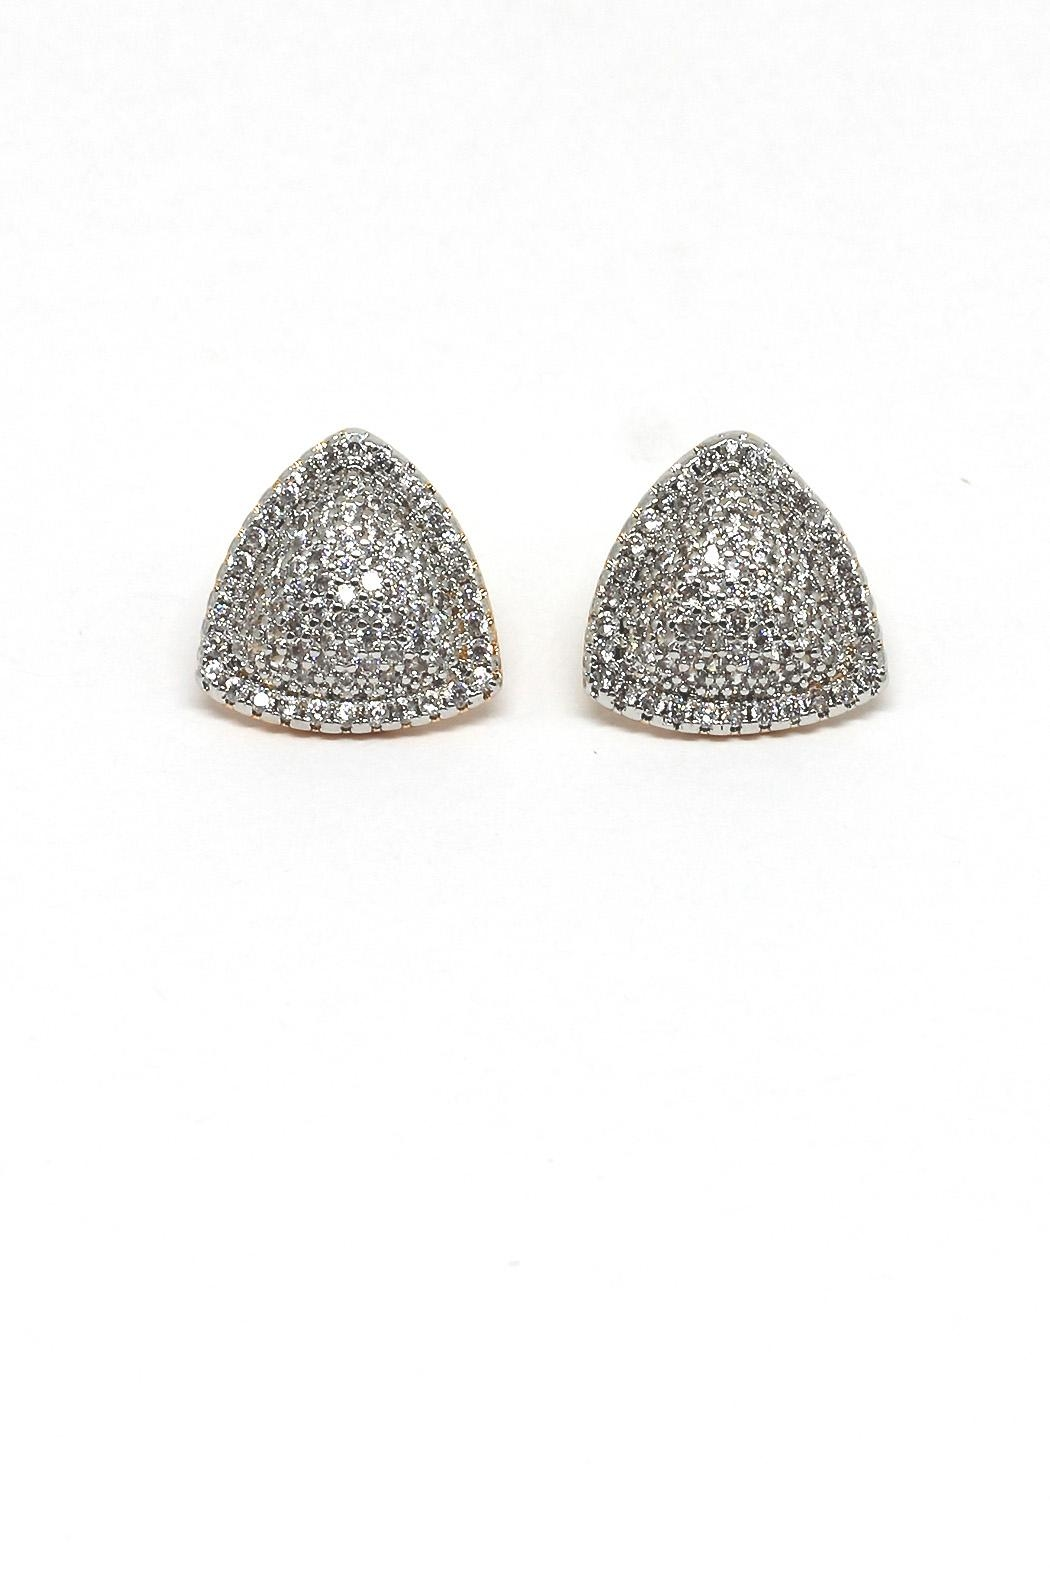 TINK TINK Triangular Gold Plated Earrings - Main Image